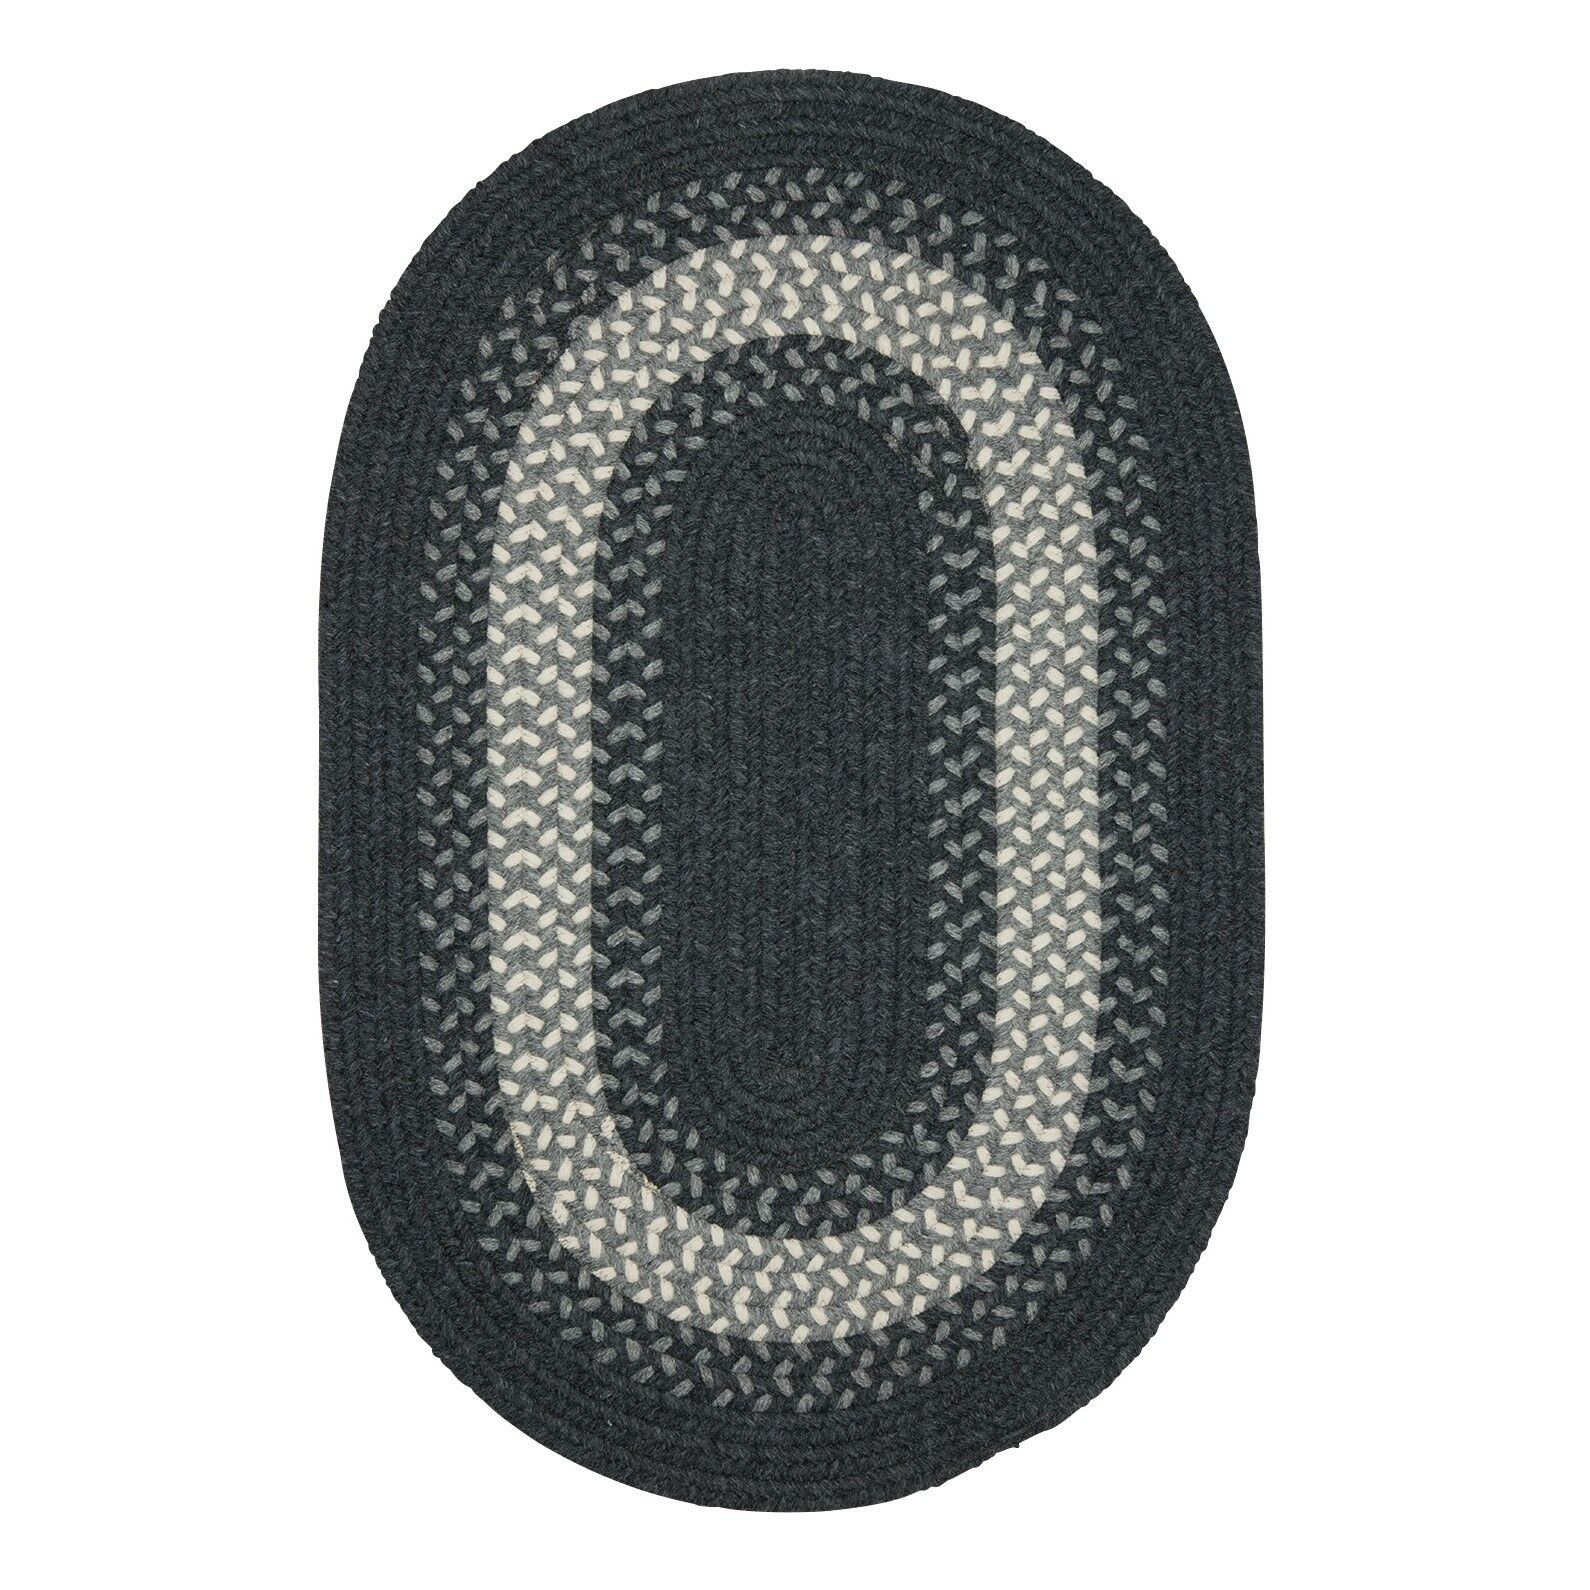 Serafin Hand-Woven Wool Charcoal Area Rug Rug Size: Round 4'